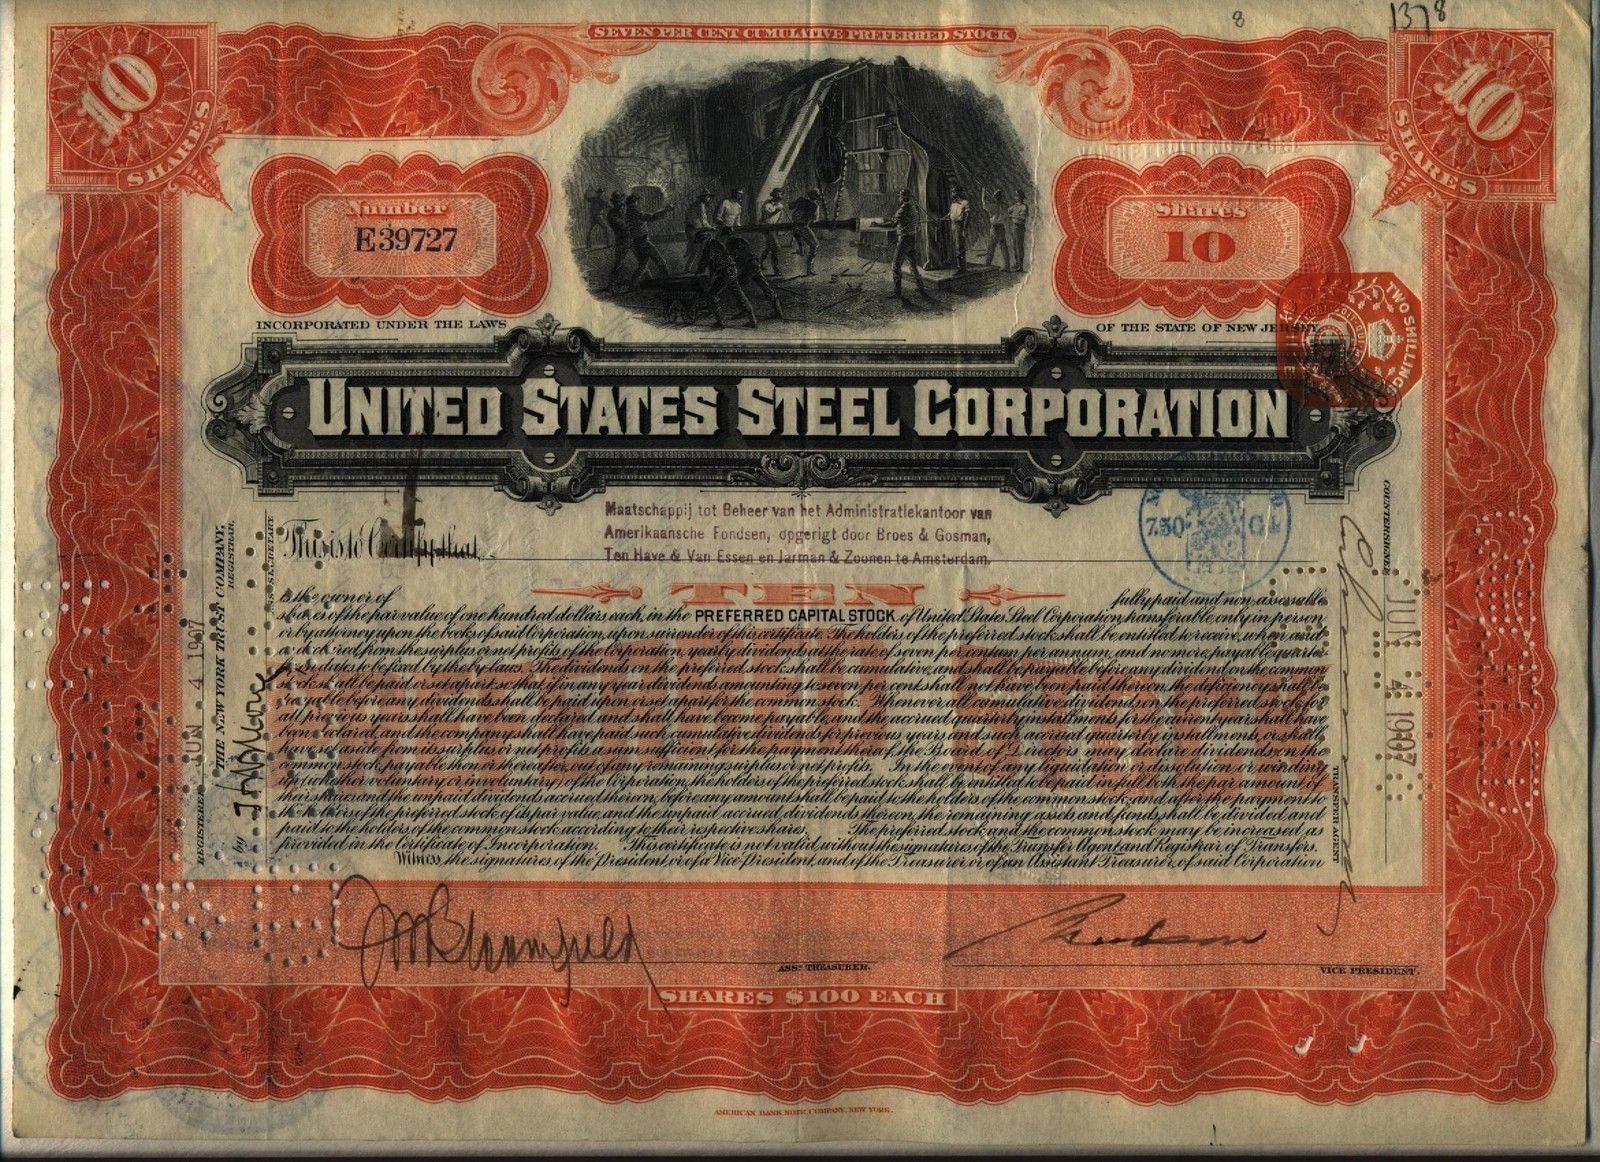 1907 United States Steel Corporation Stock Certificate